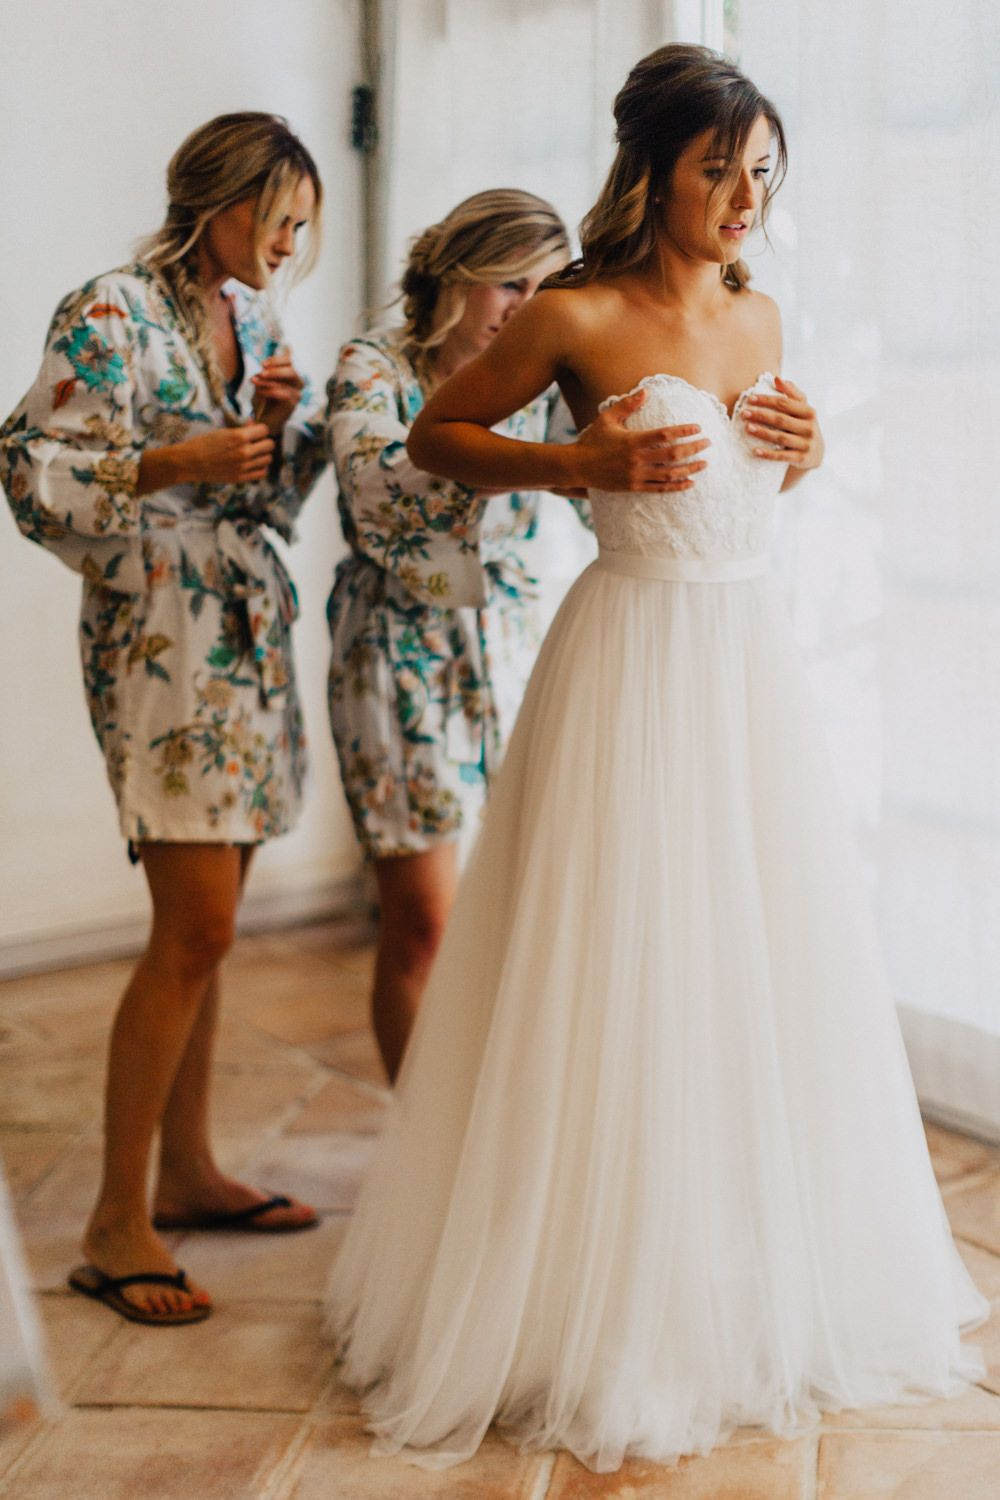 Destination wedding at french chateau with bride in wtoo by watters